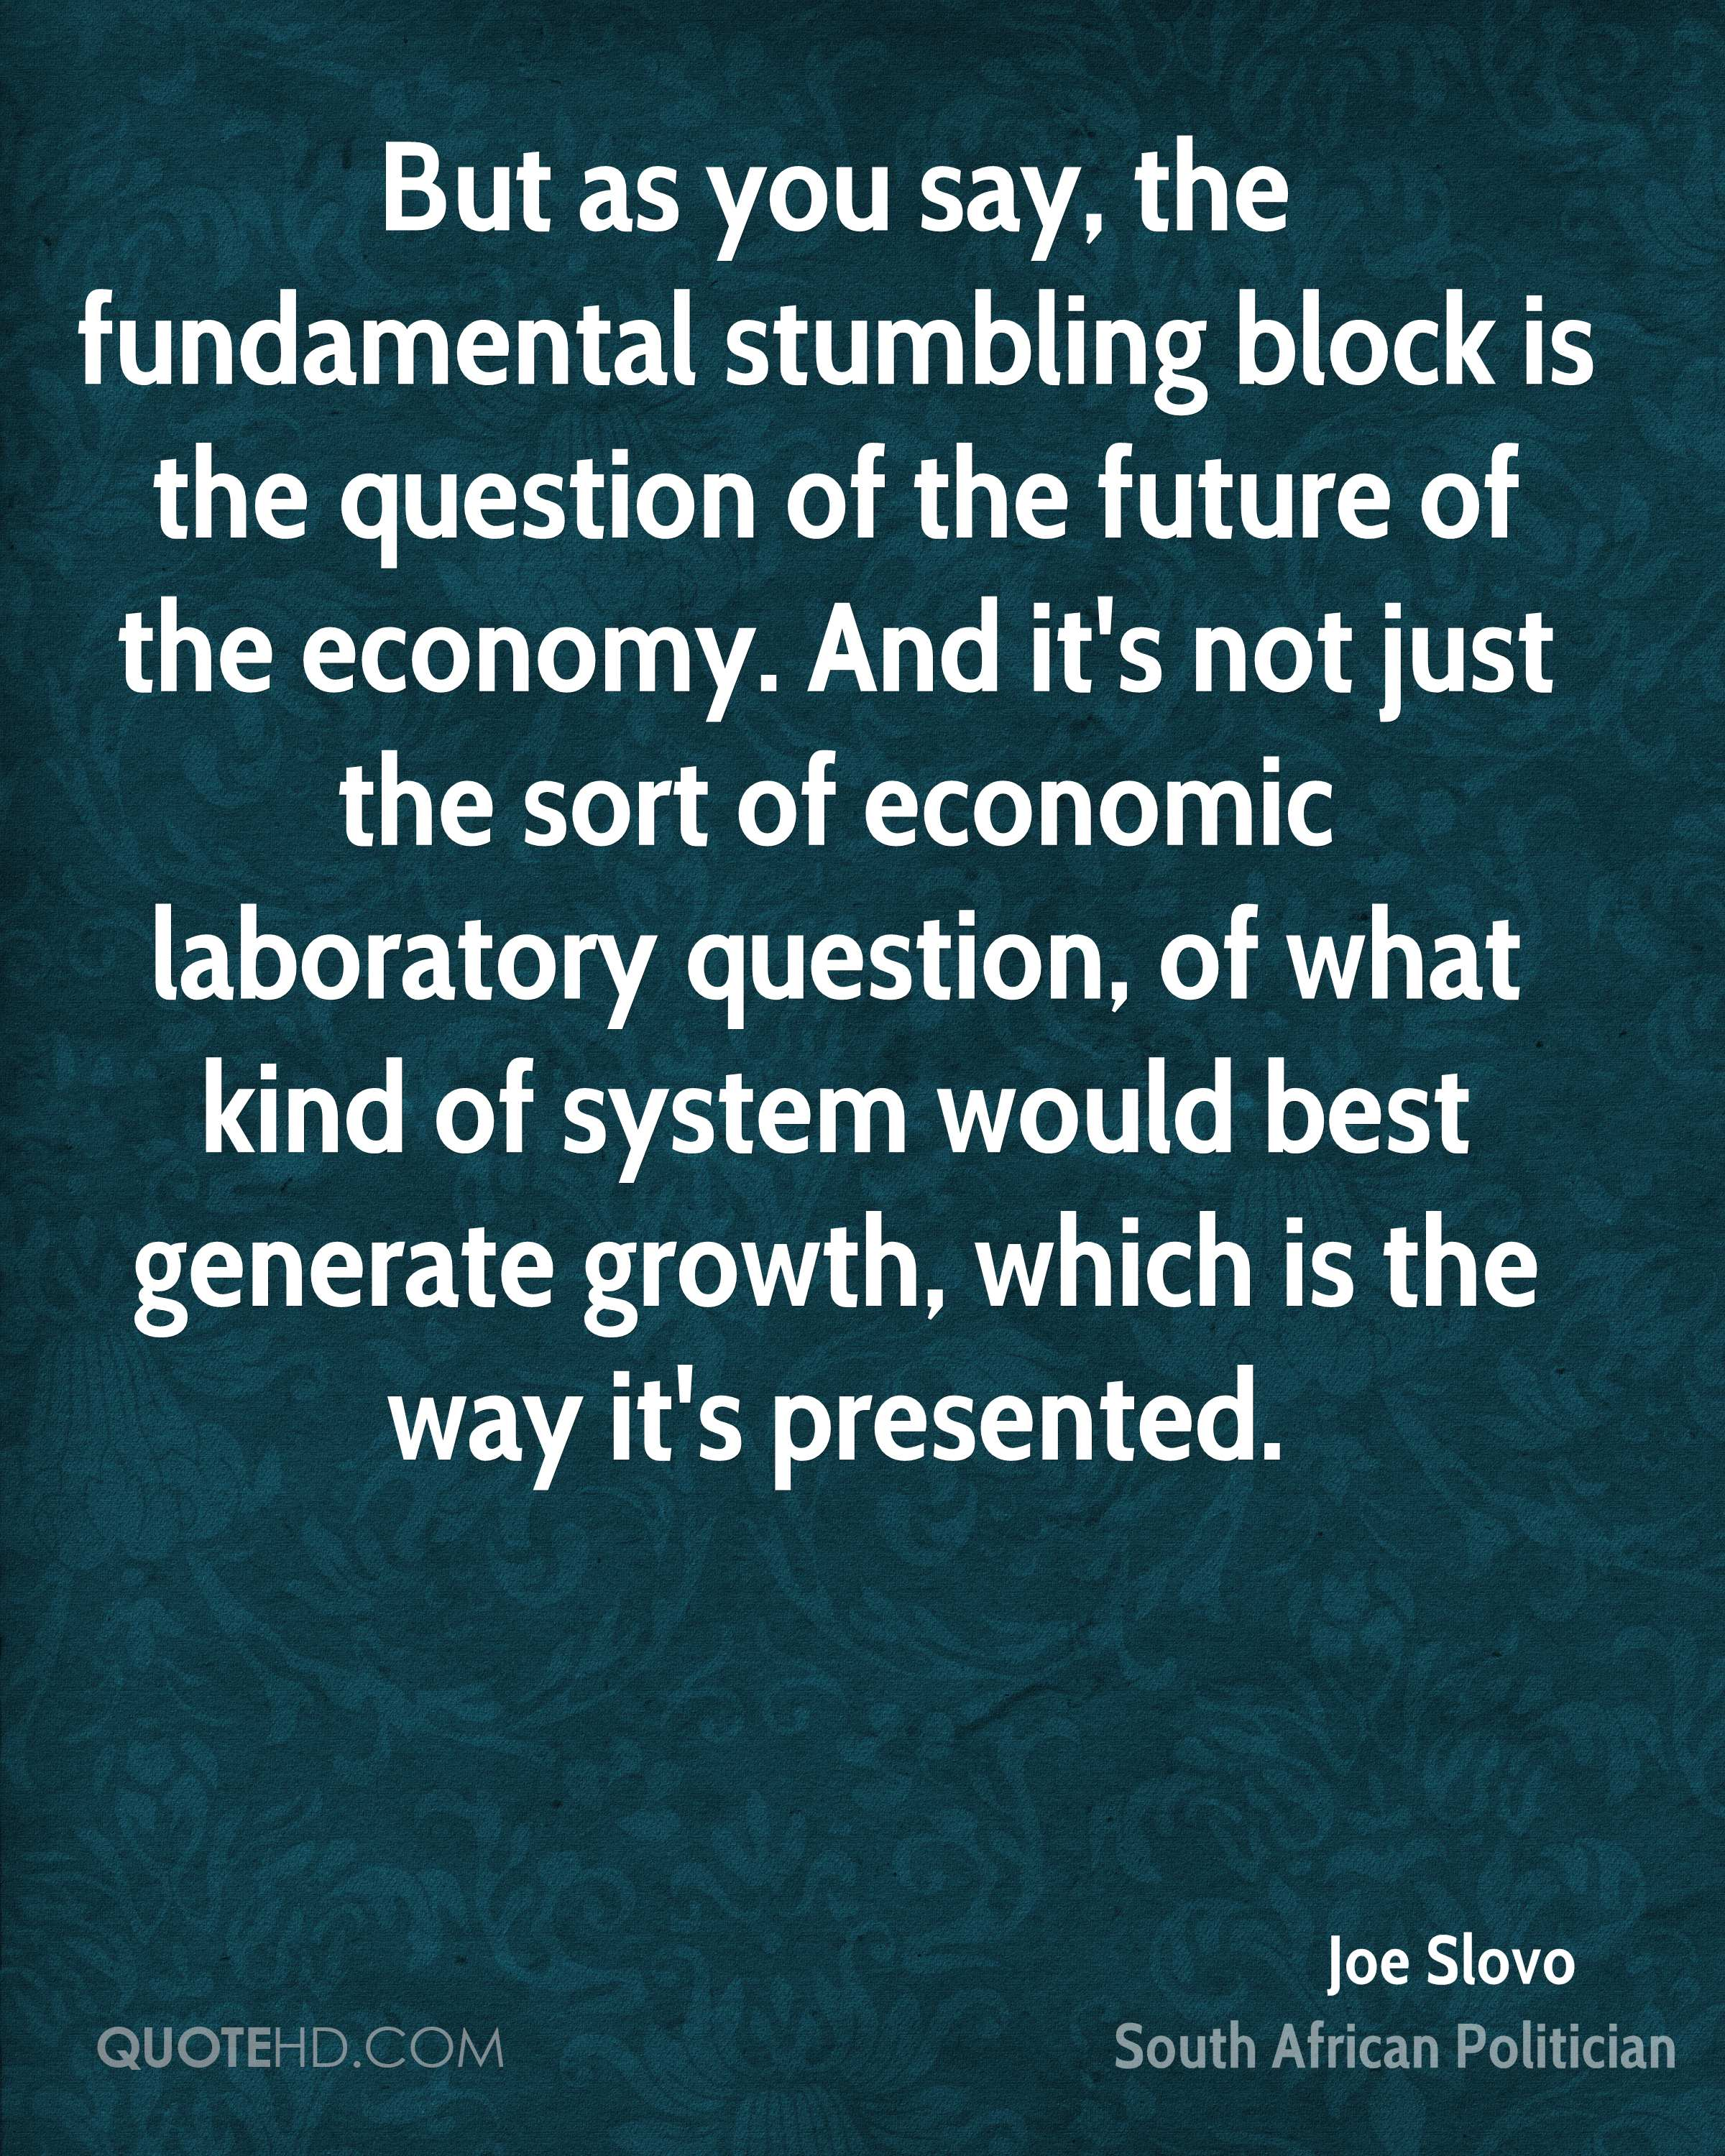 But as you say, the fundamental stumbling block is the question of the future of the economy. And it's not just the sort of economic laboratory question, of what kind of system would best generate growth, which is the way it's presented.